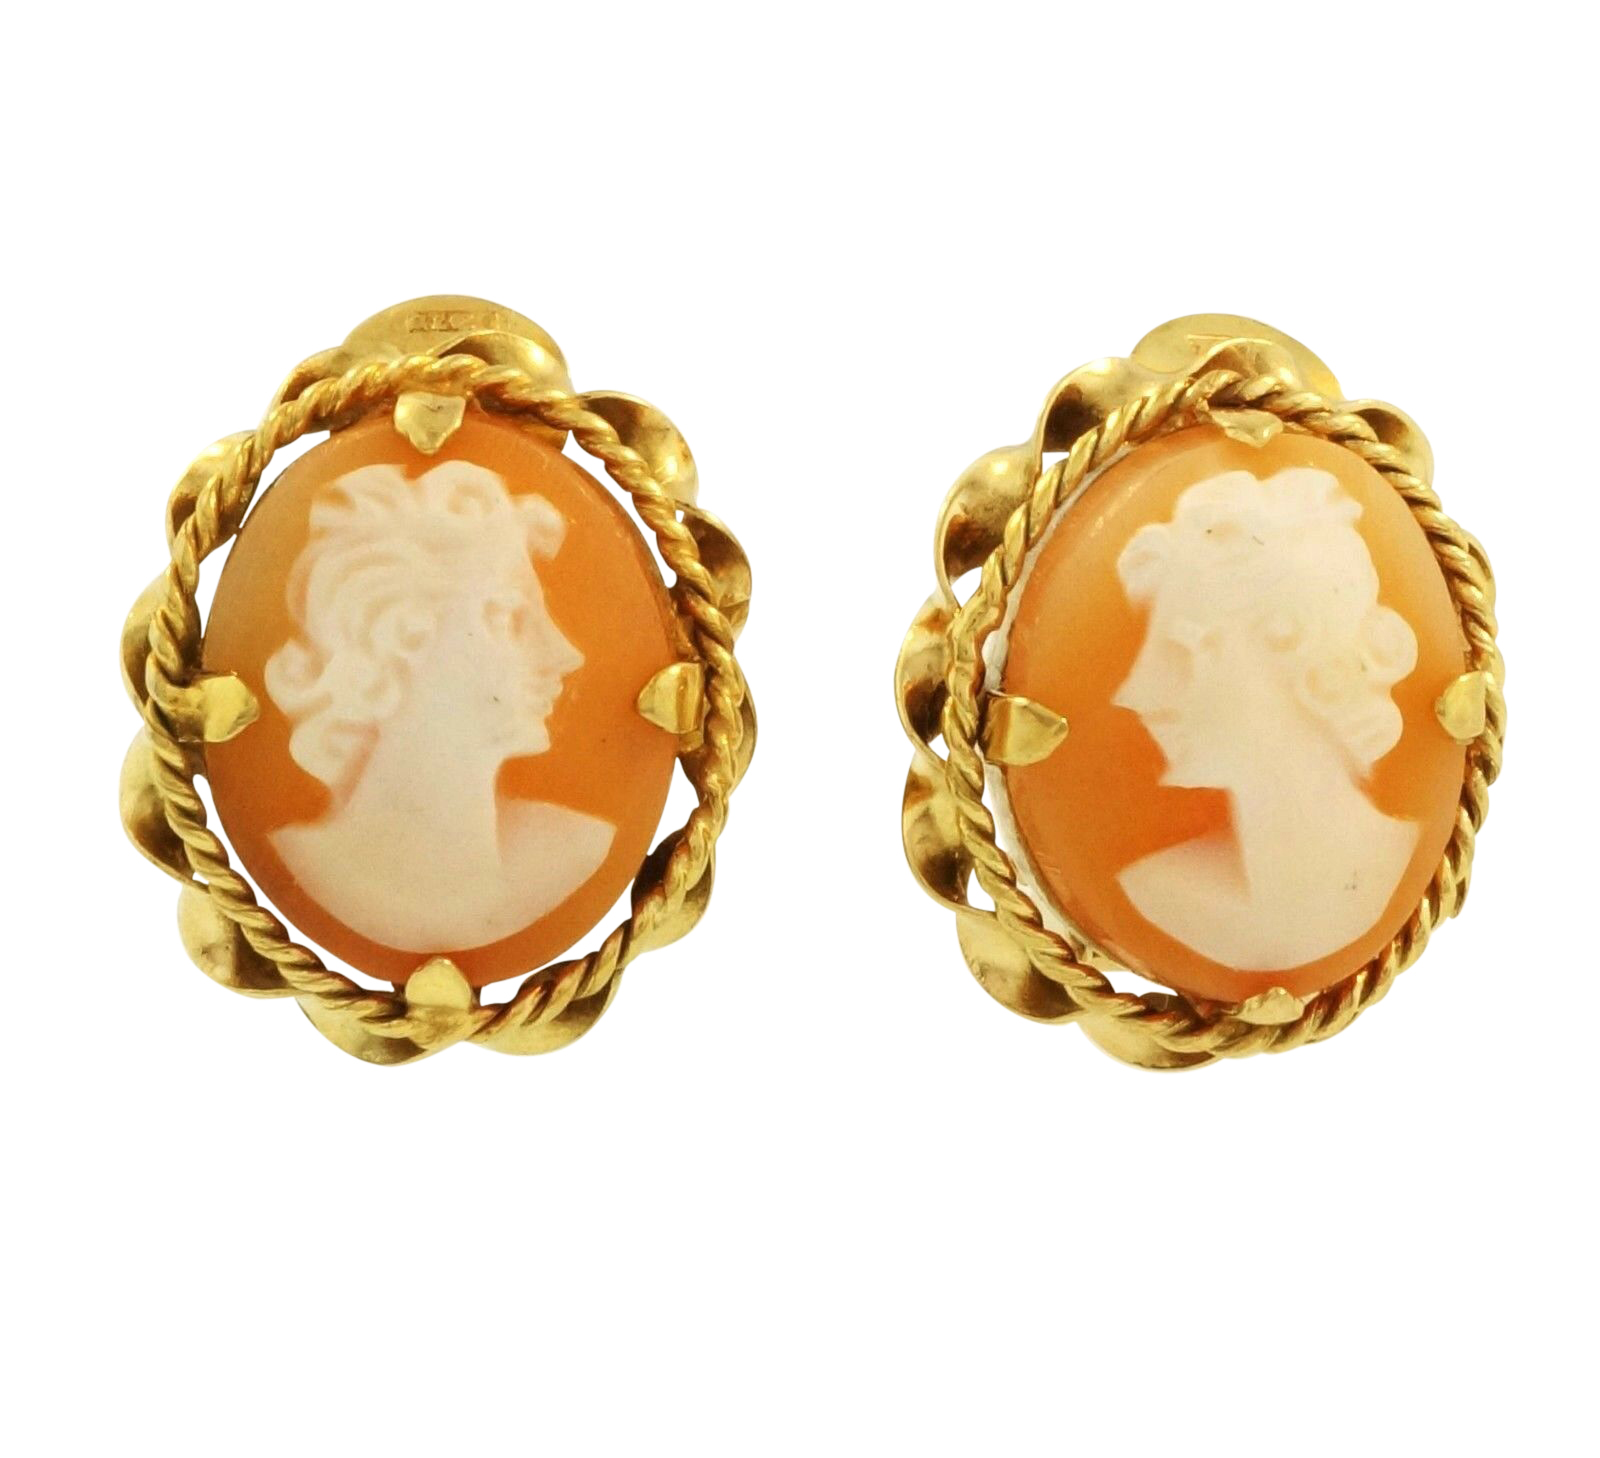 9carat Yellow Gold Oval Cameo Stud Clip On Earrings